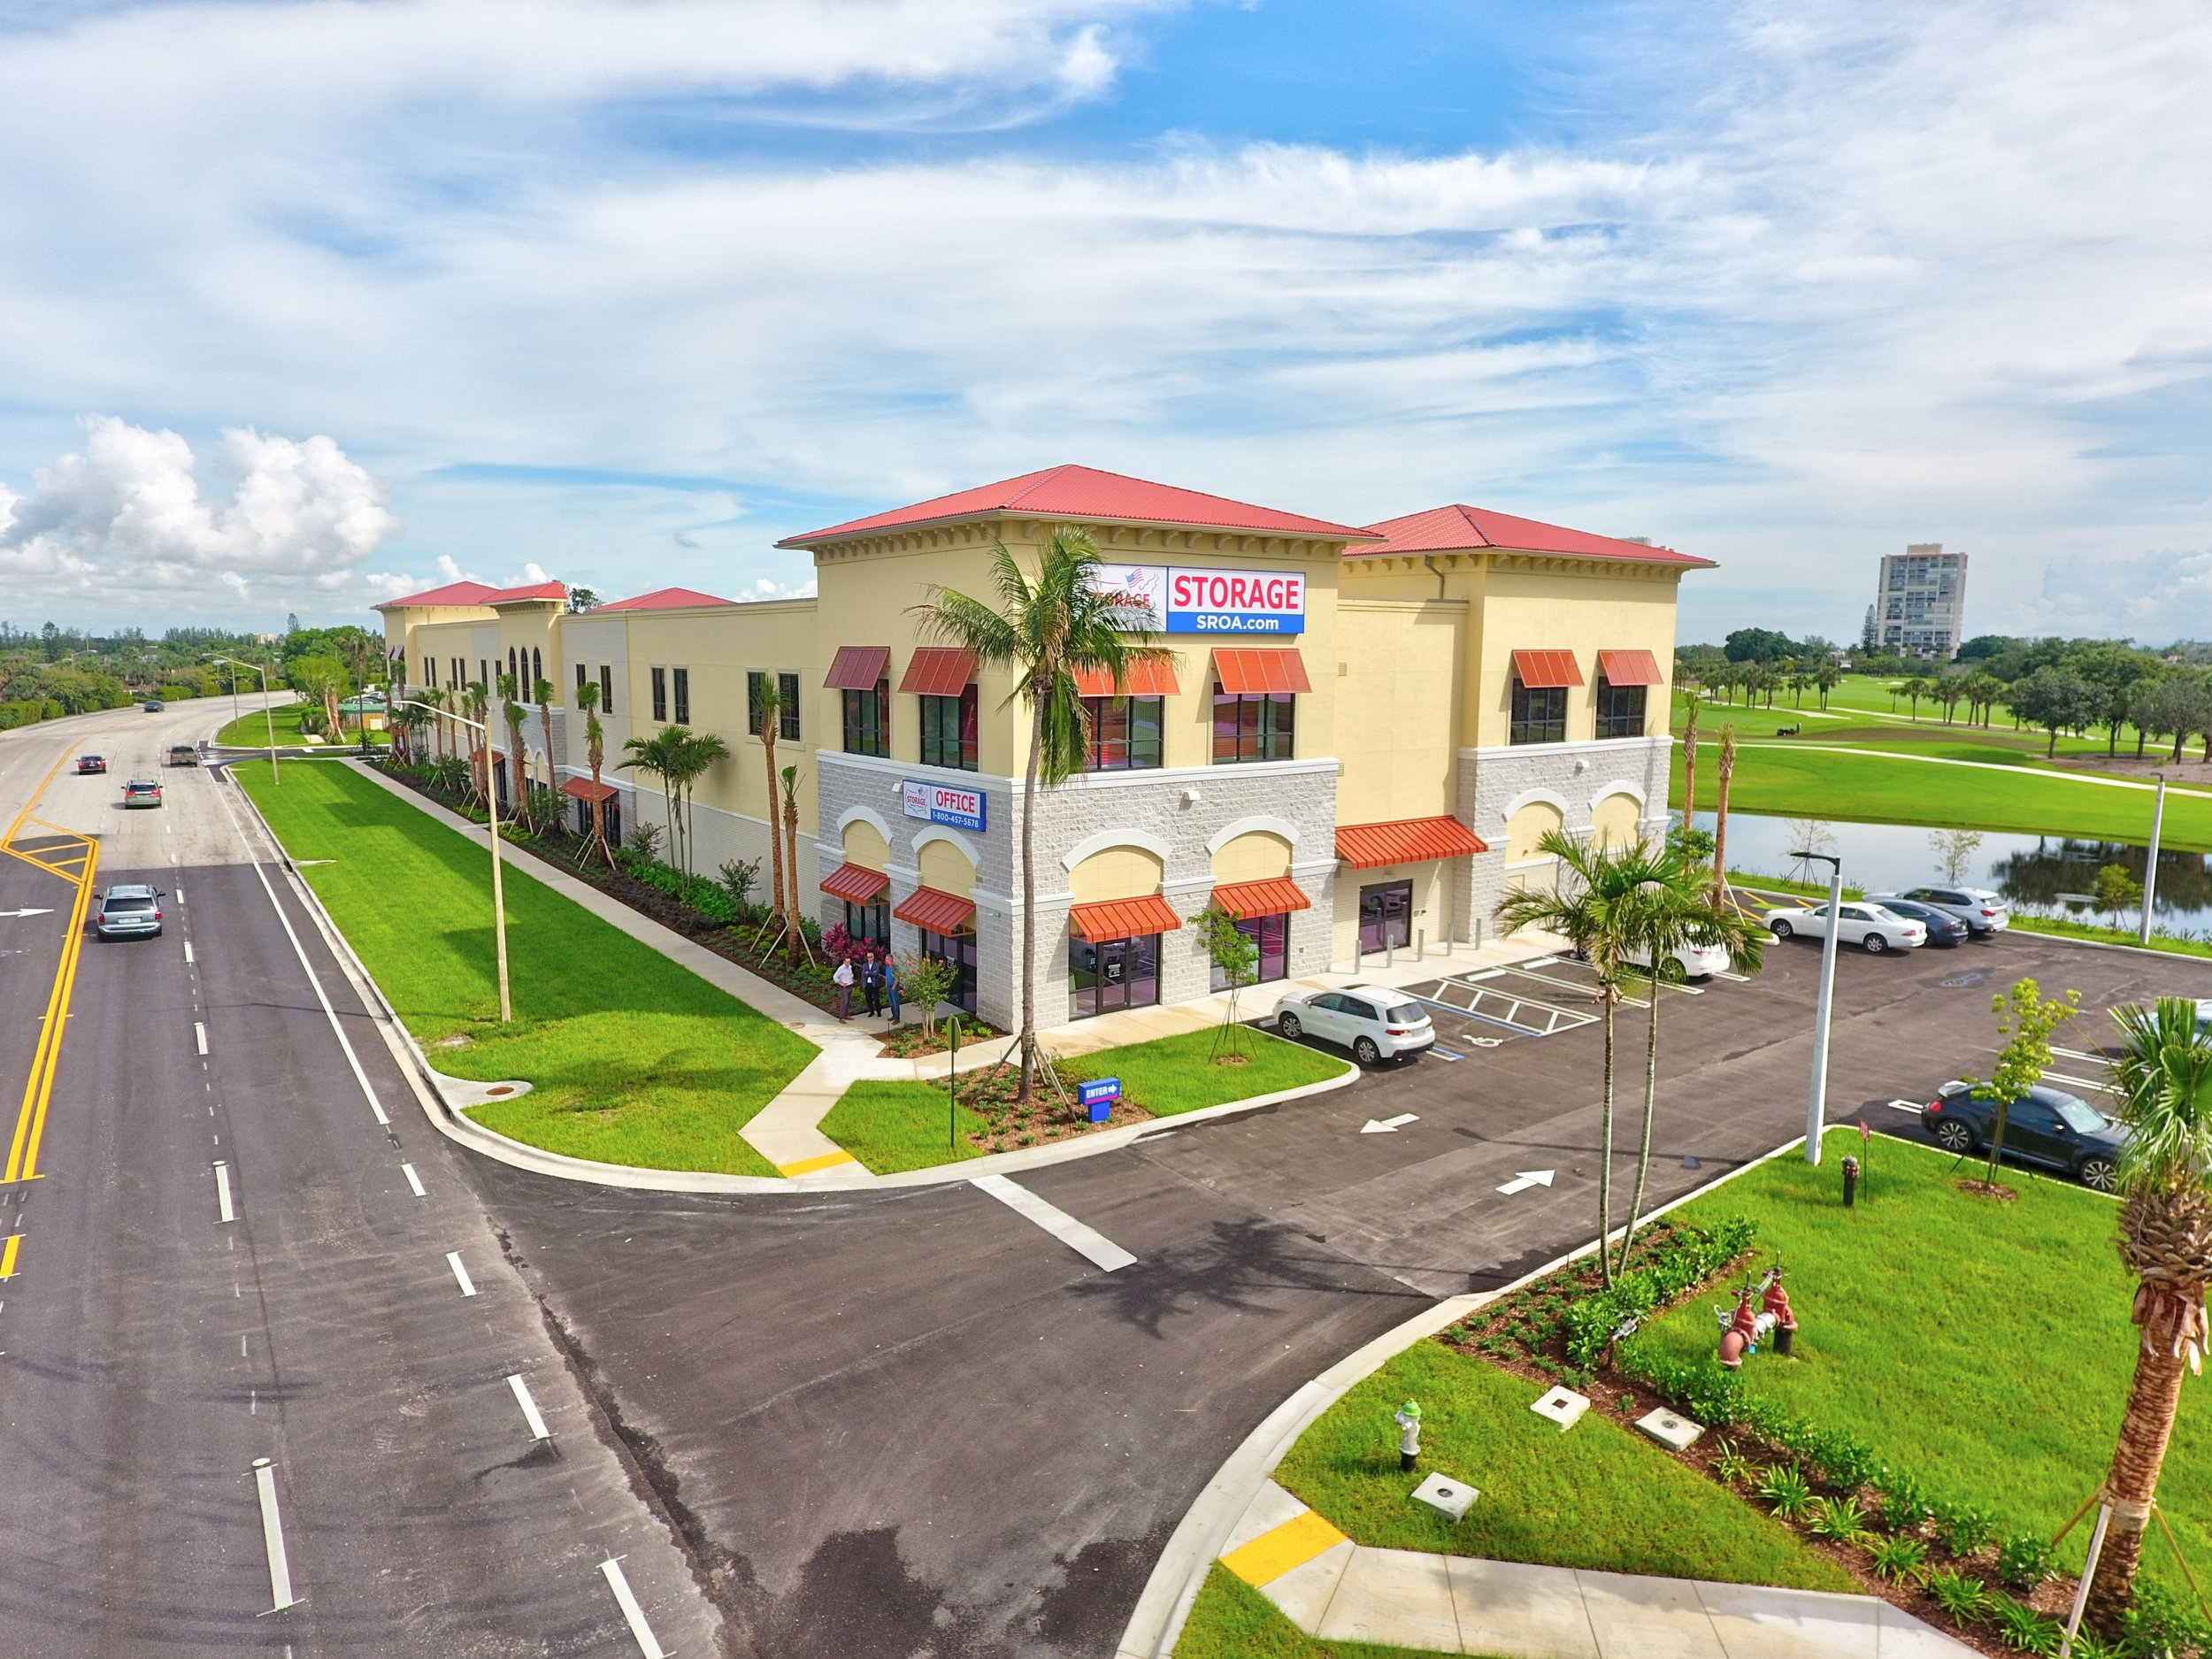 west palm beach new picture.jpg